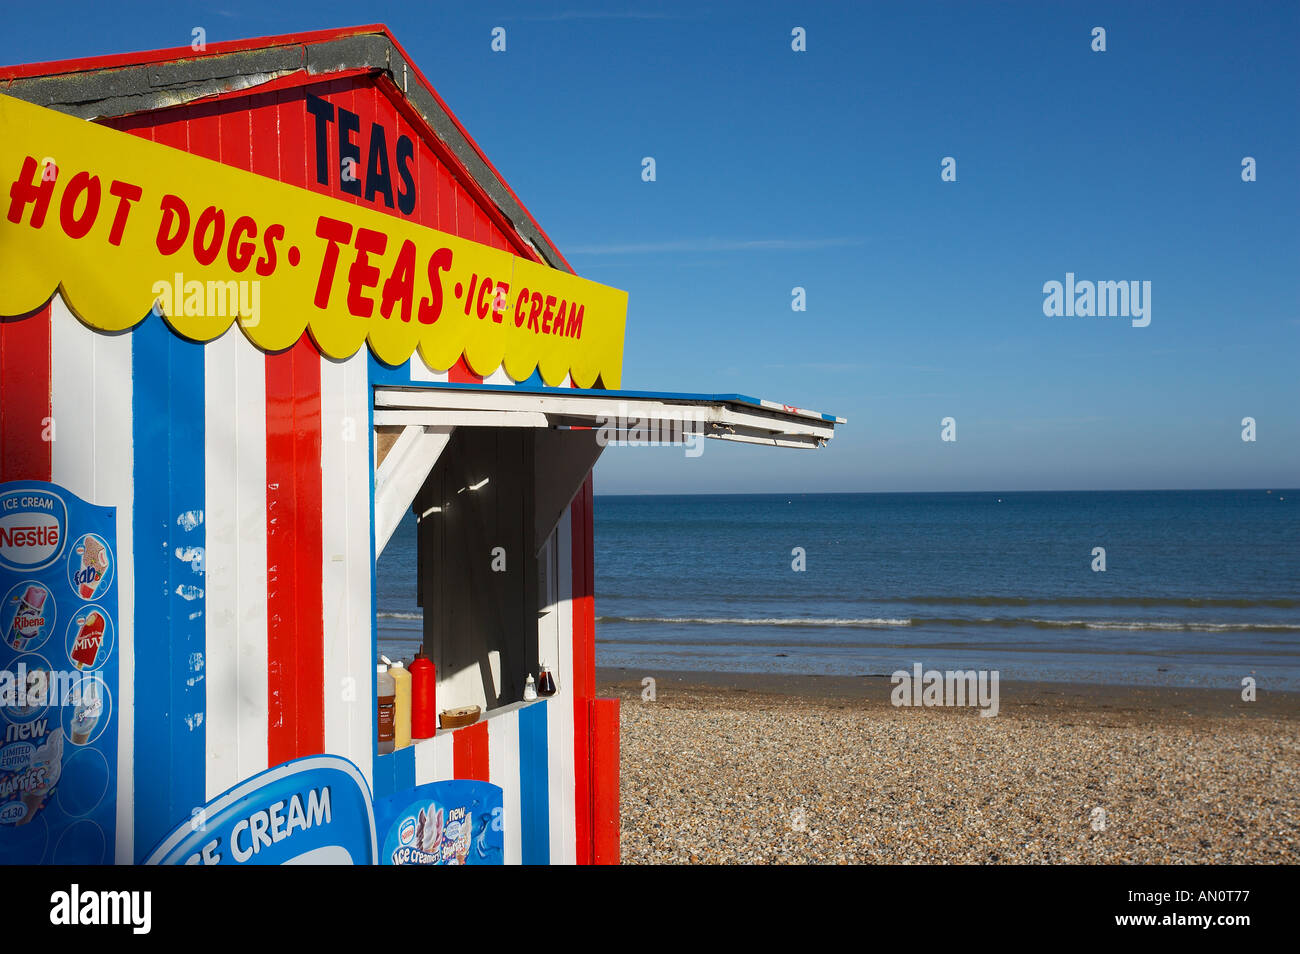 detail-of-beach-hut-selling-ice-cream-et